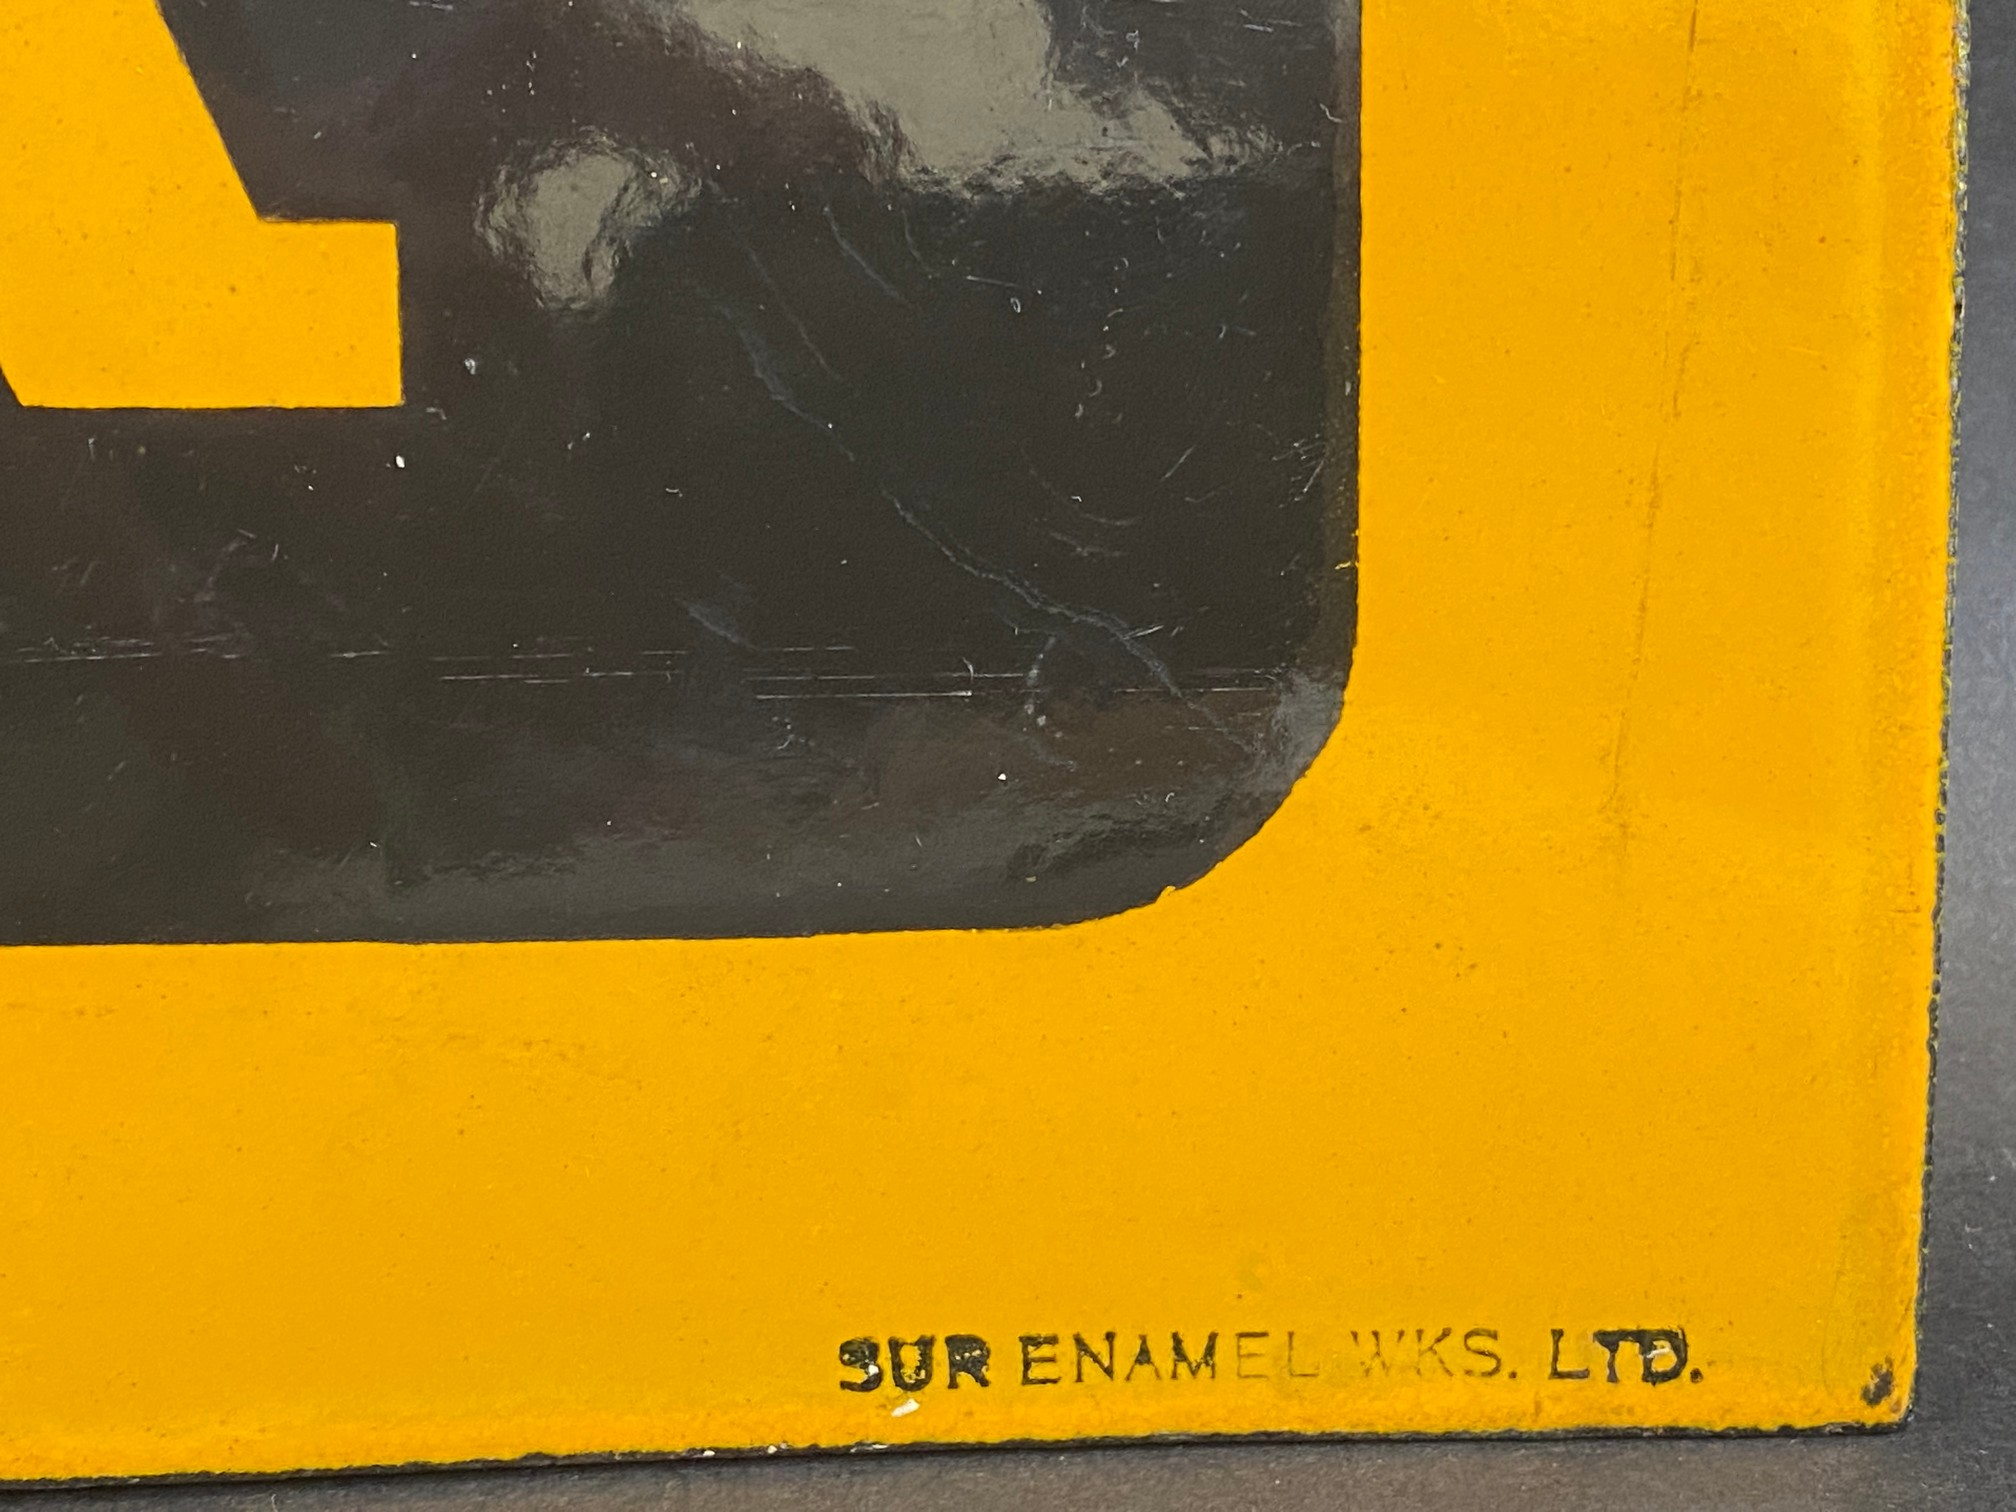 A Dunlop Stock double sided enamel sign with hanging flange, in near mint condition, made by Sur - Image 2 of 4